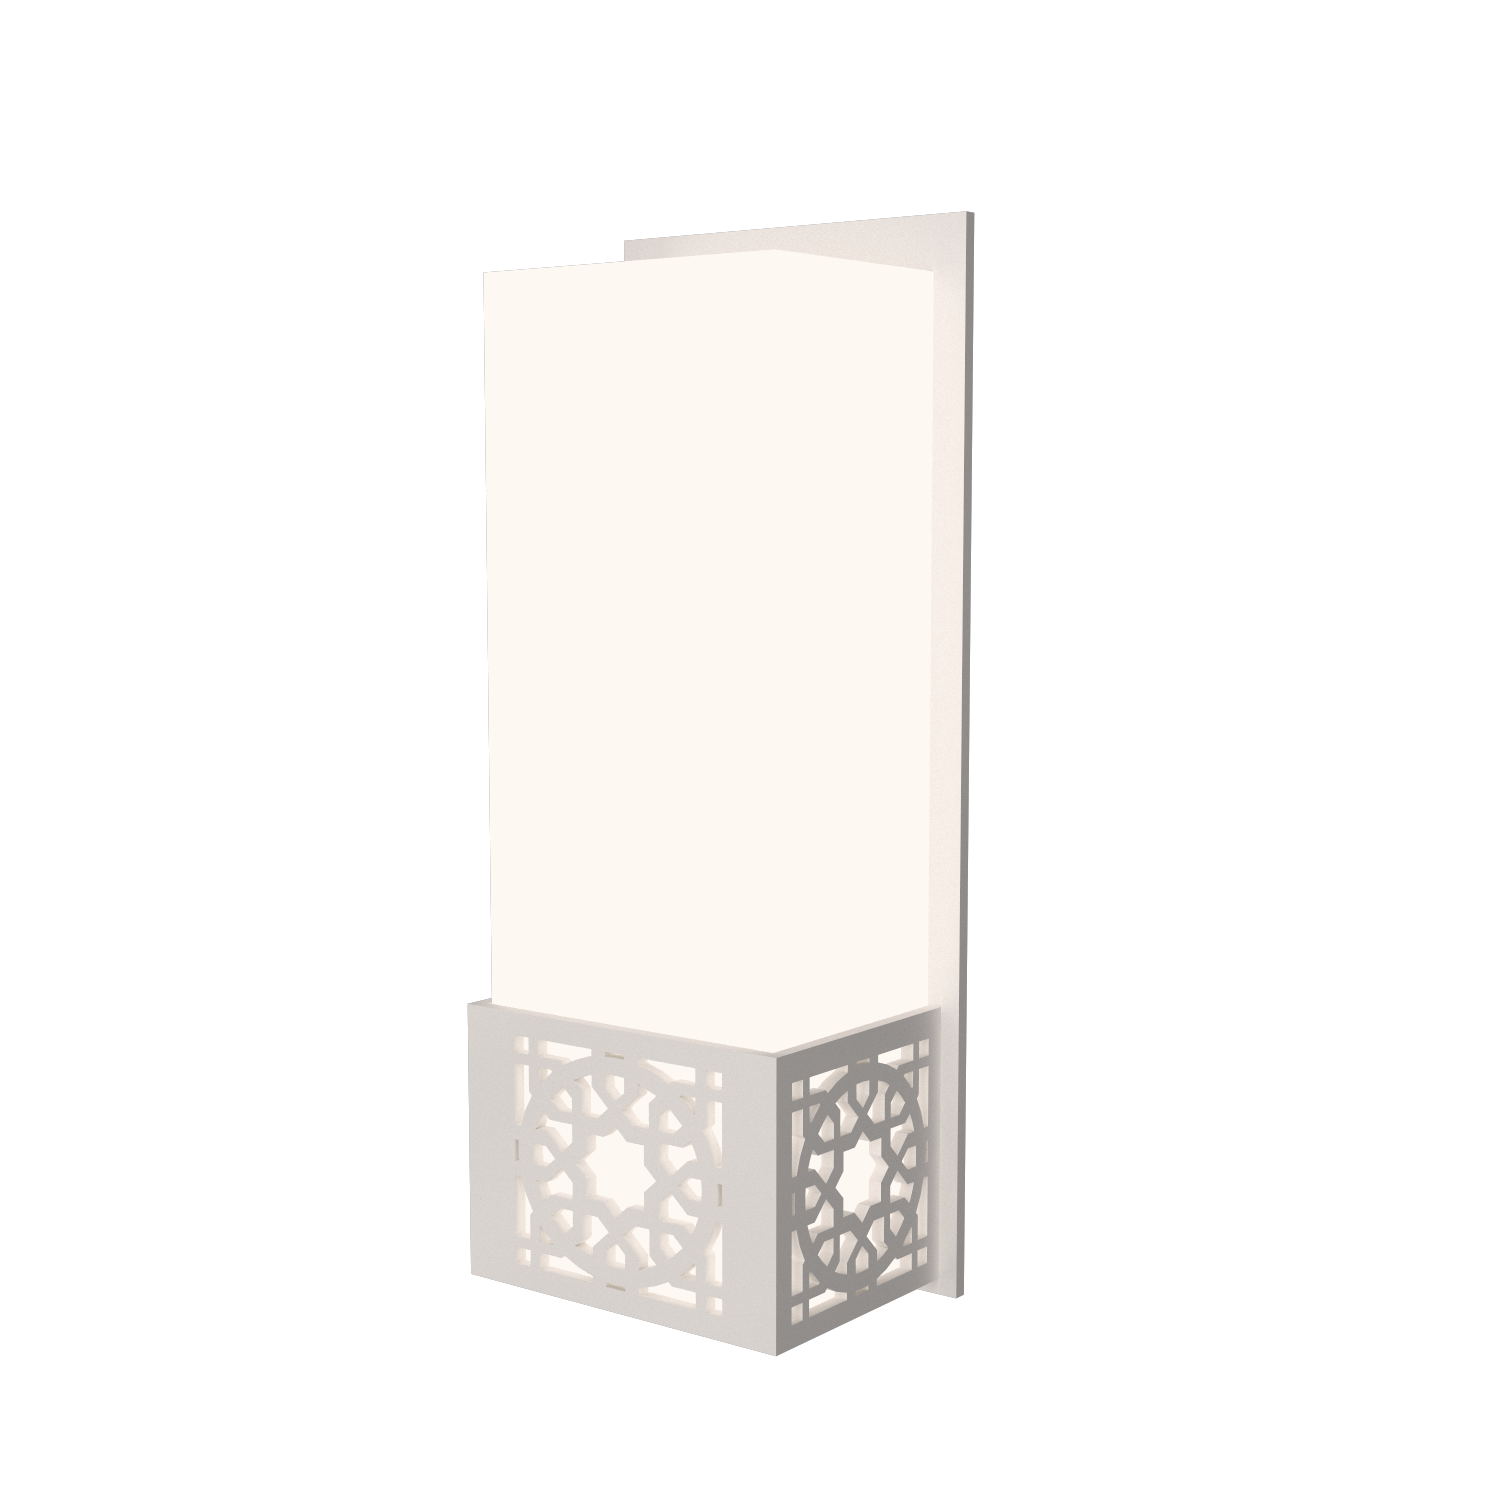 Wall Lamp Accord Patterns 4052 - Patterns Line Accord Lighting | 25. Iredescent White